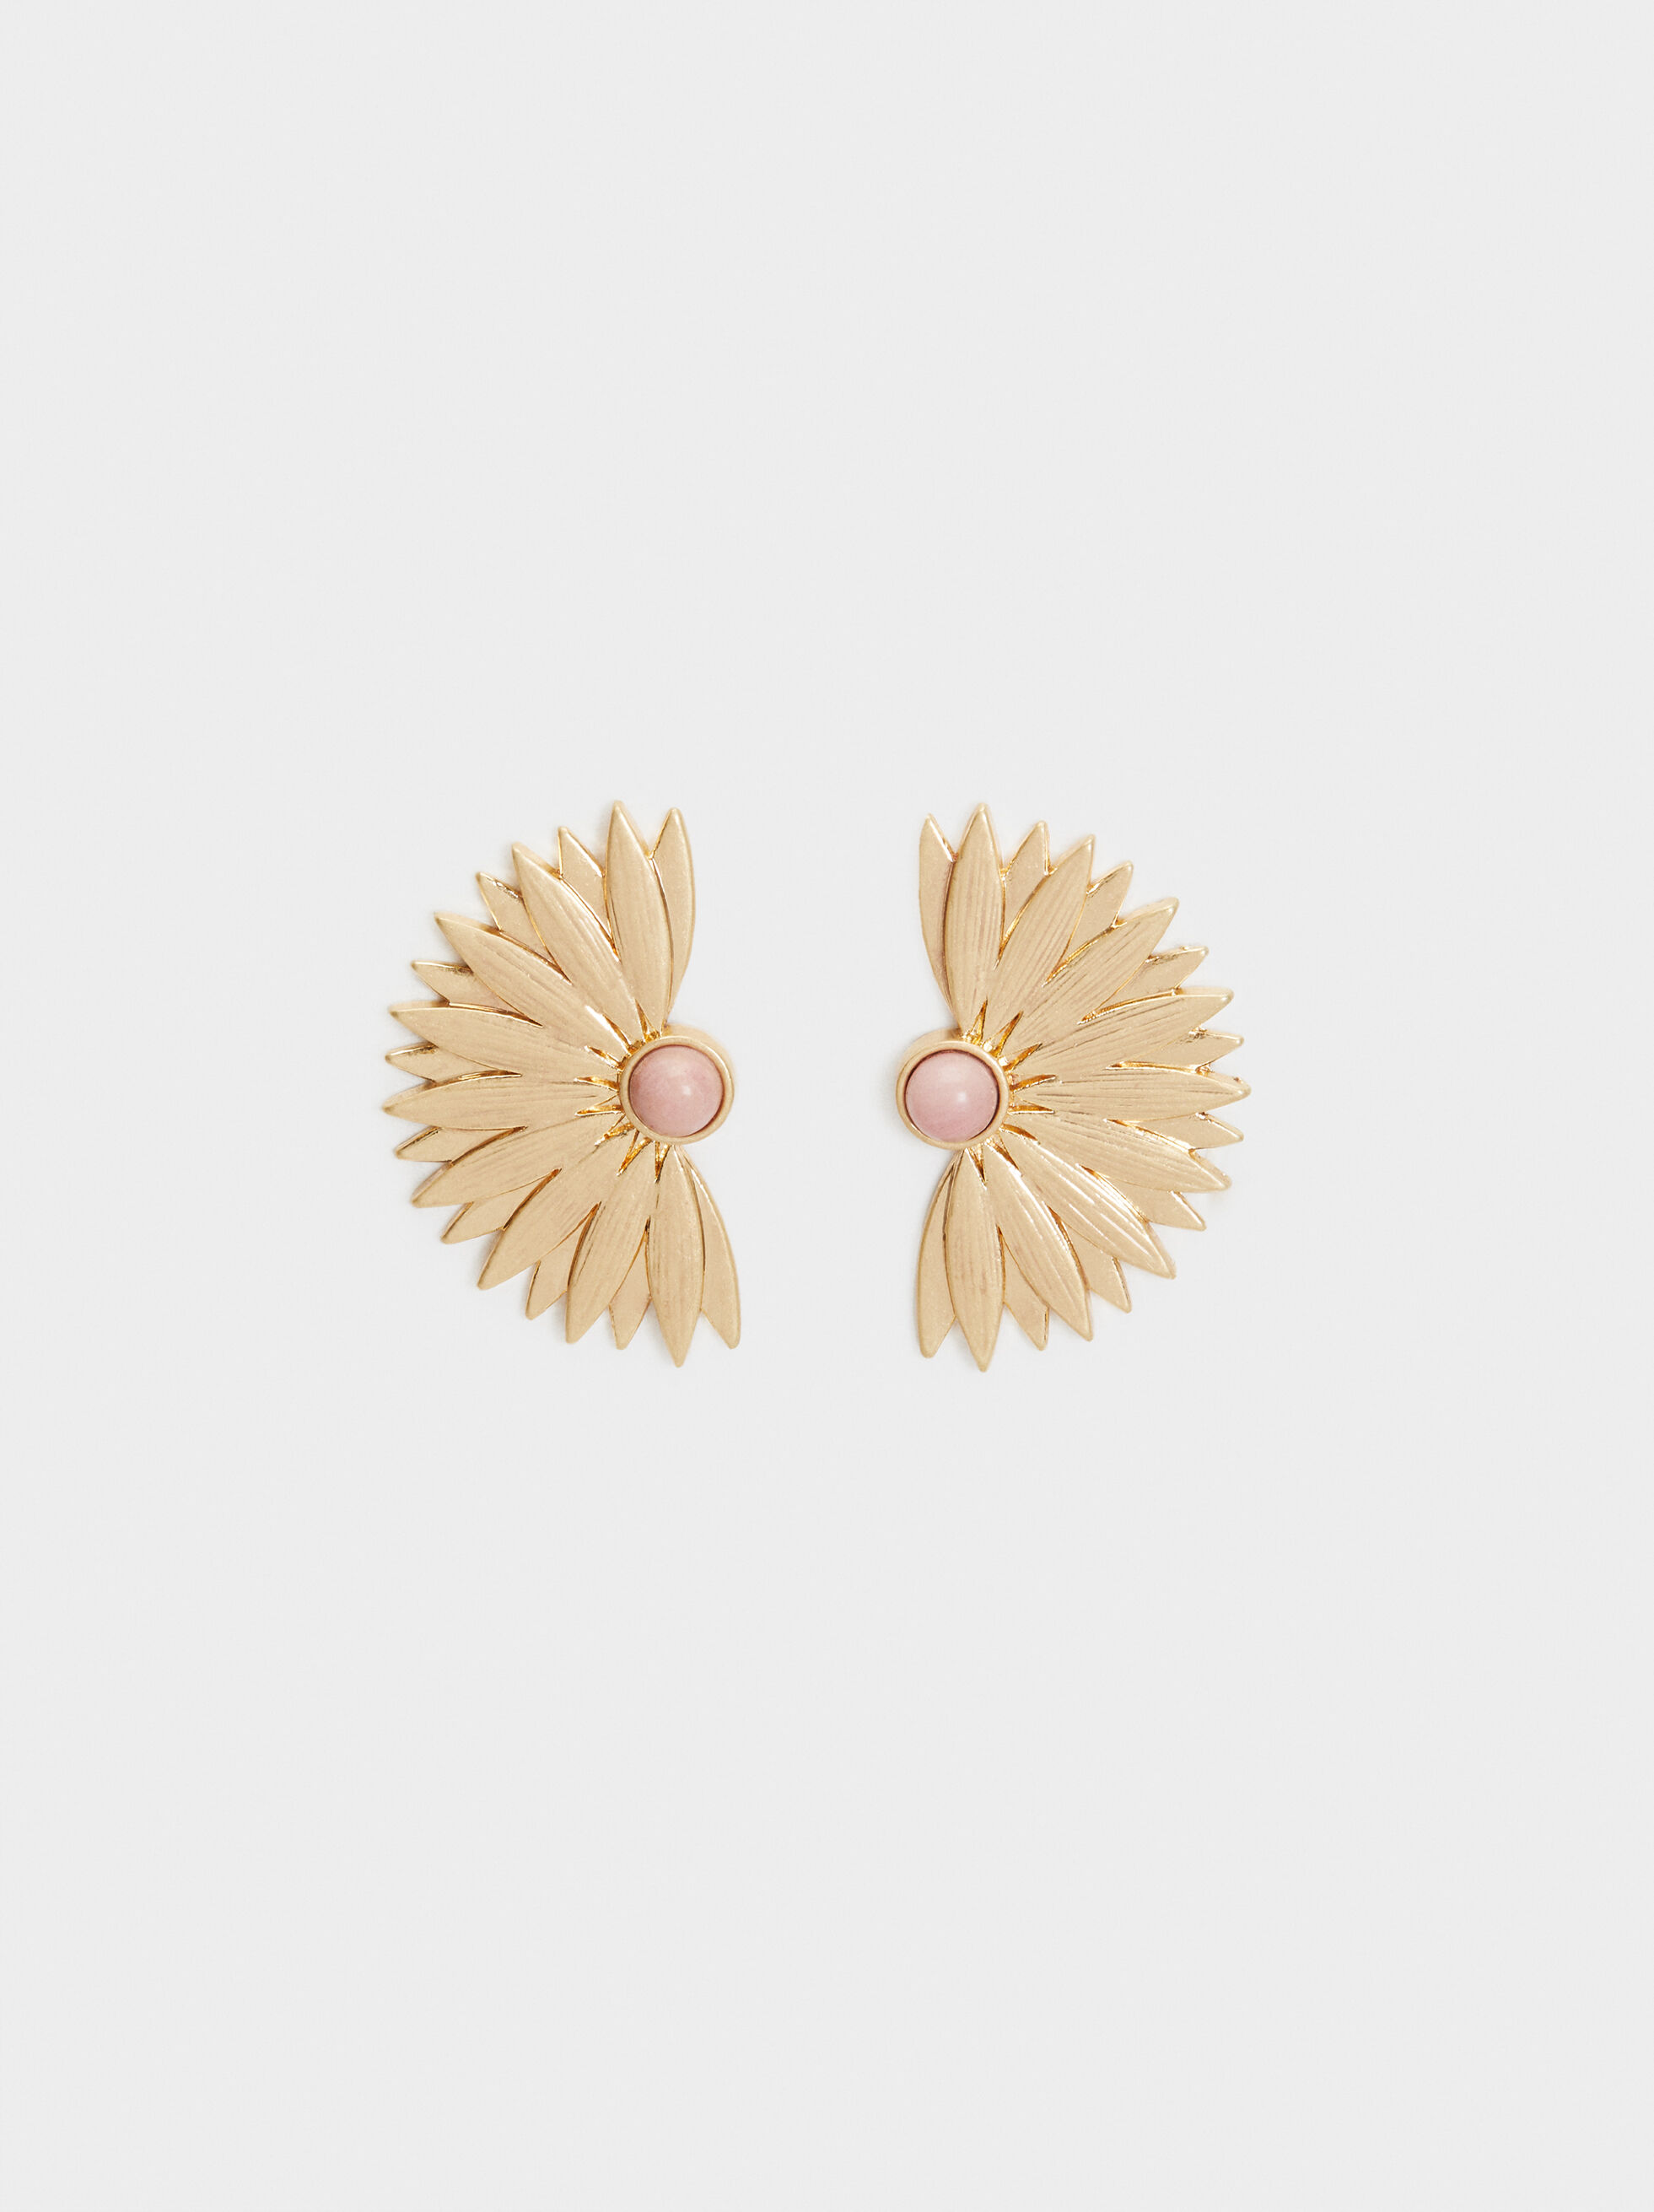 Sea Breeze Stone Stud Earrings, , hi-res